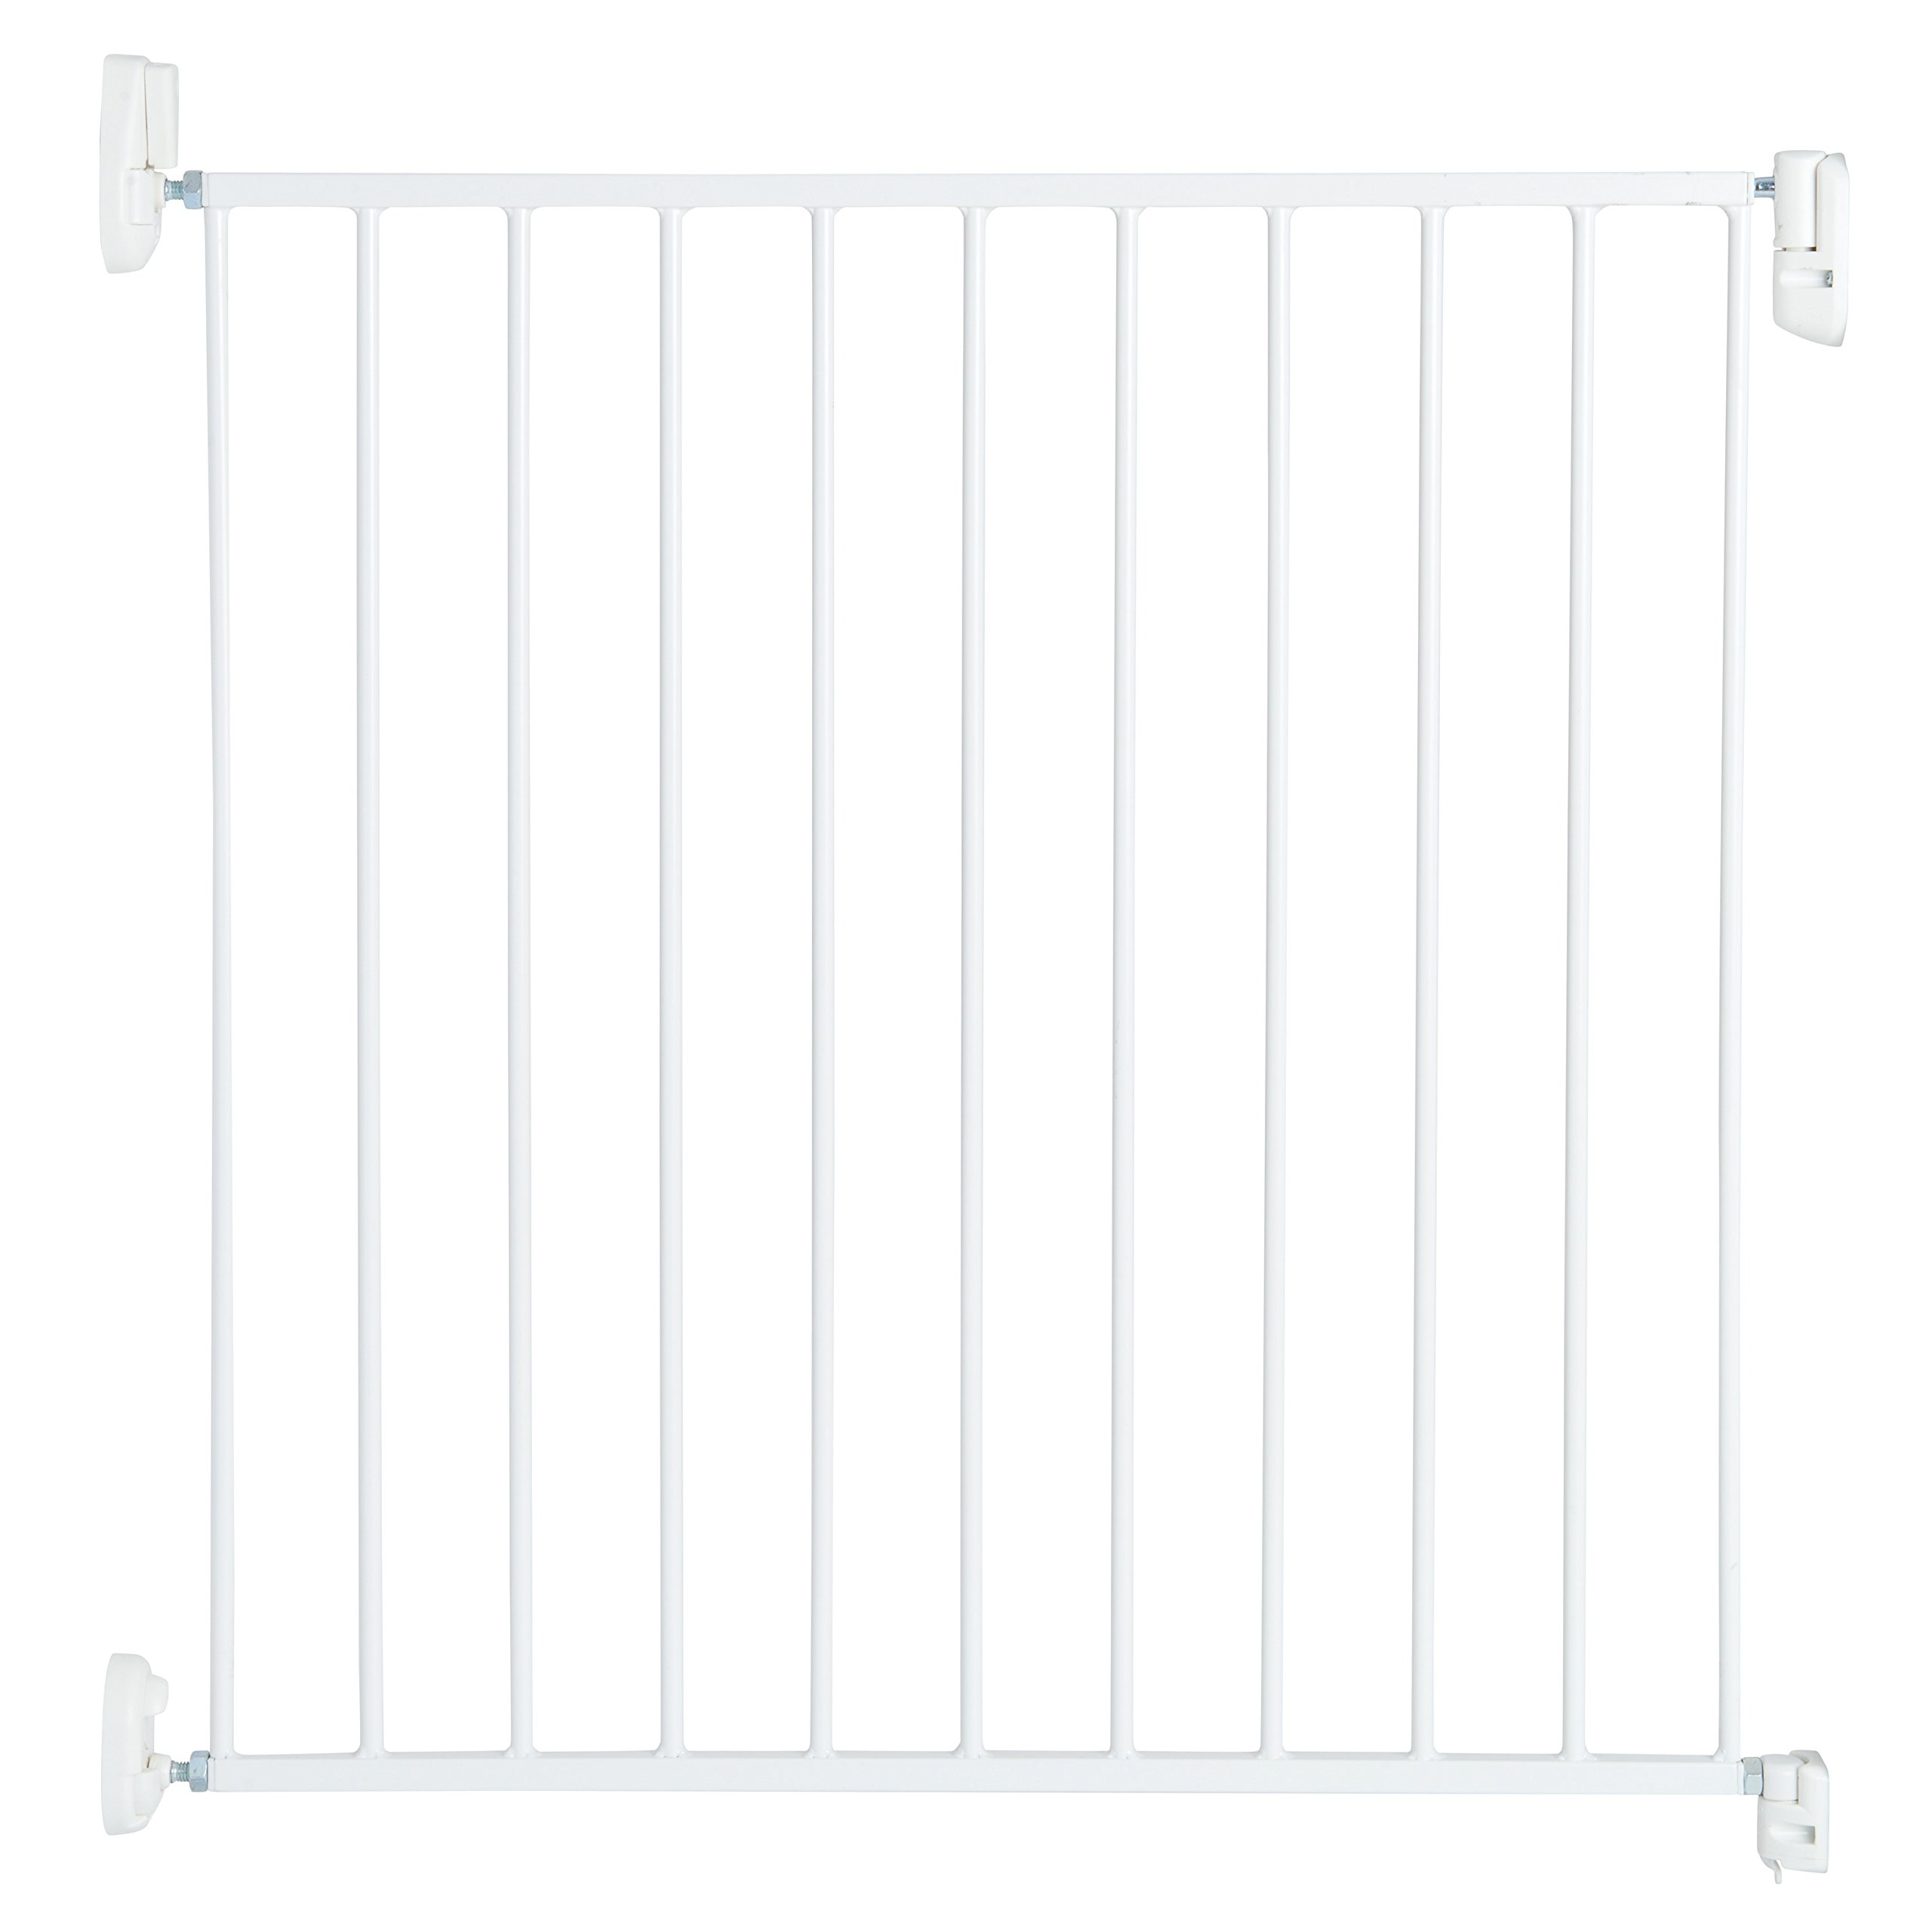 Munchkin Sure Shut Push to Close Hardware Baby Gate, Adjusts from 30'' to 32'' Wide, White, Model MKSA0646